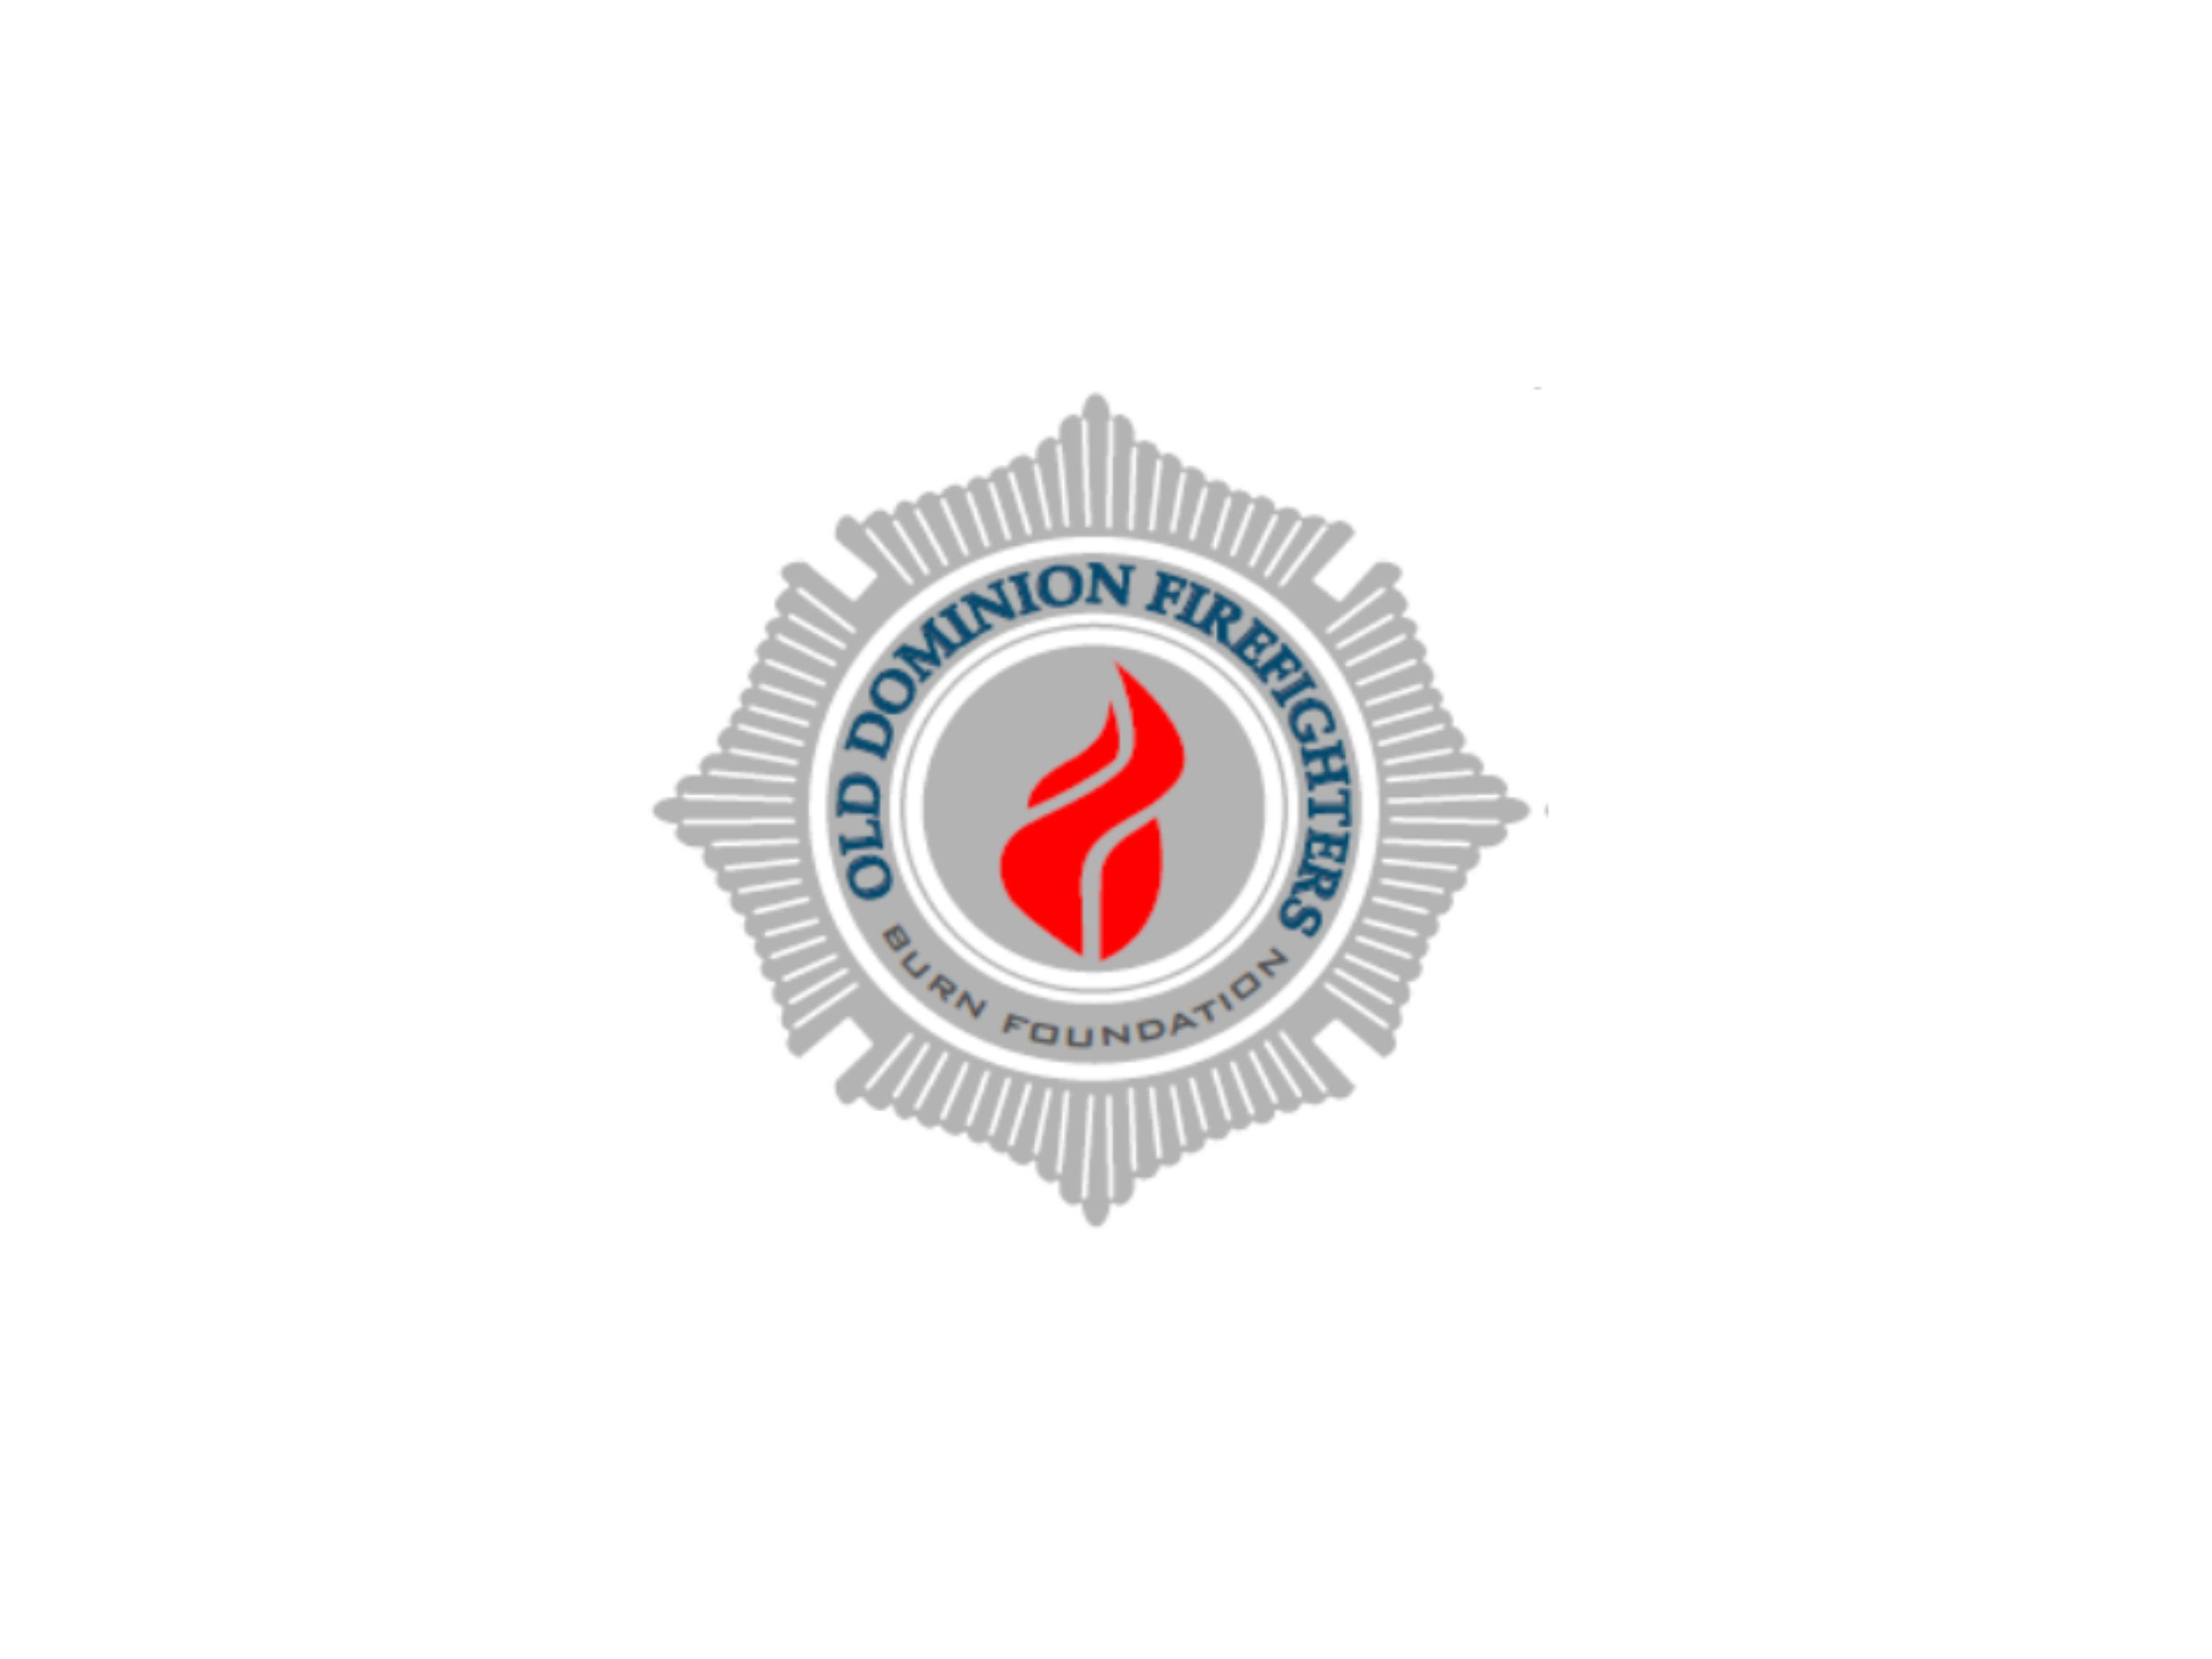 Group logo of Old Dominion Fire Fighters Burn Foundation